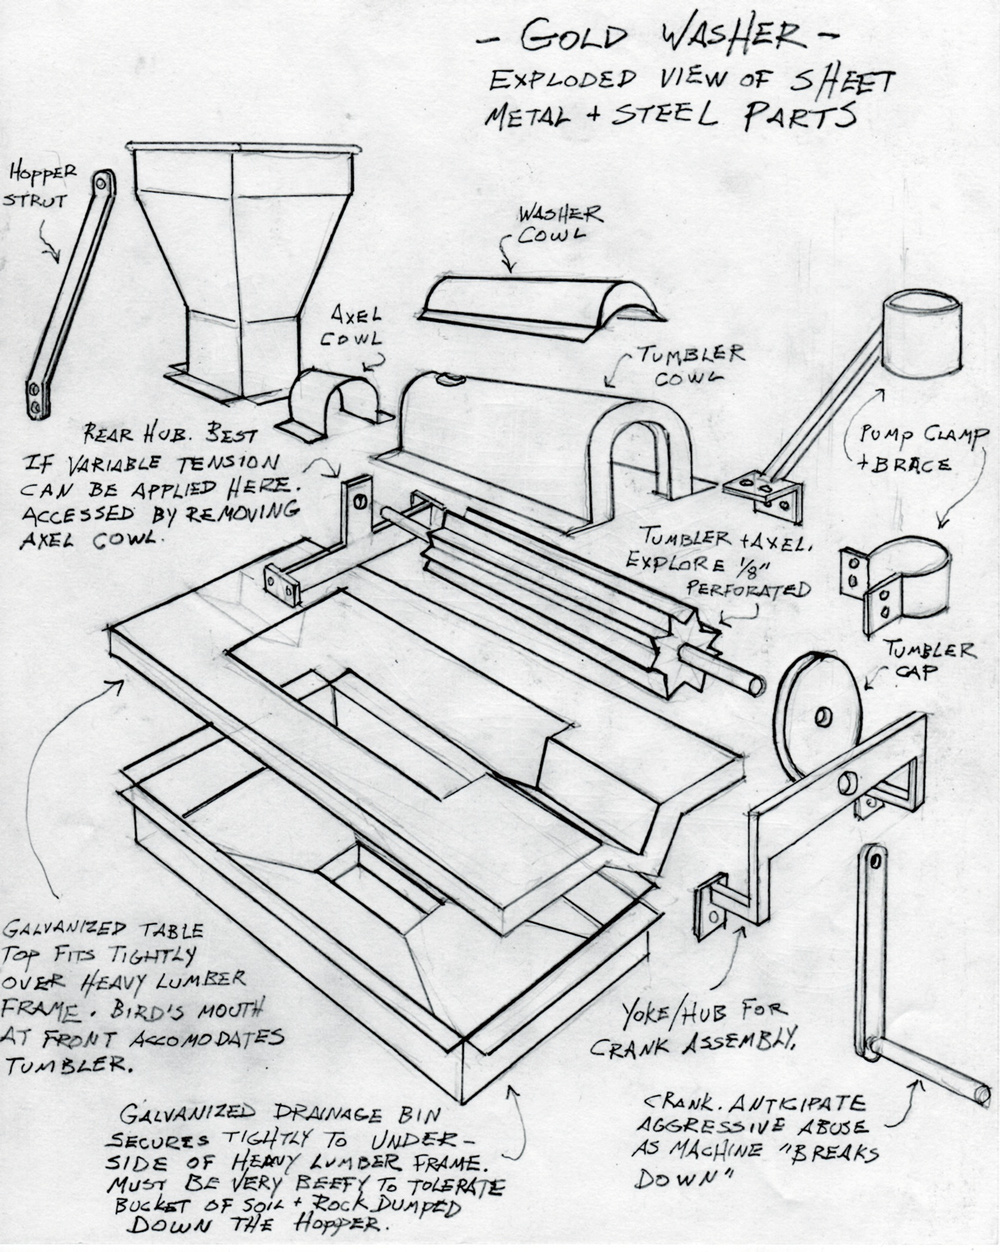 A sketch of the sheet metal and steel parts we would need to bend for the gold washer.